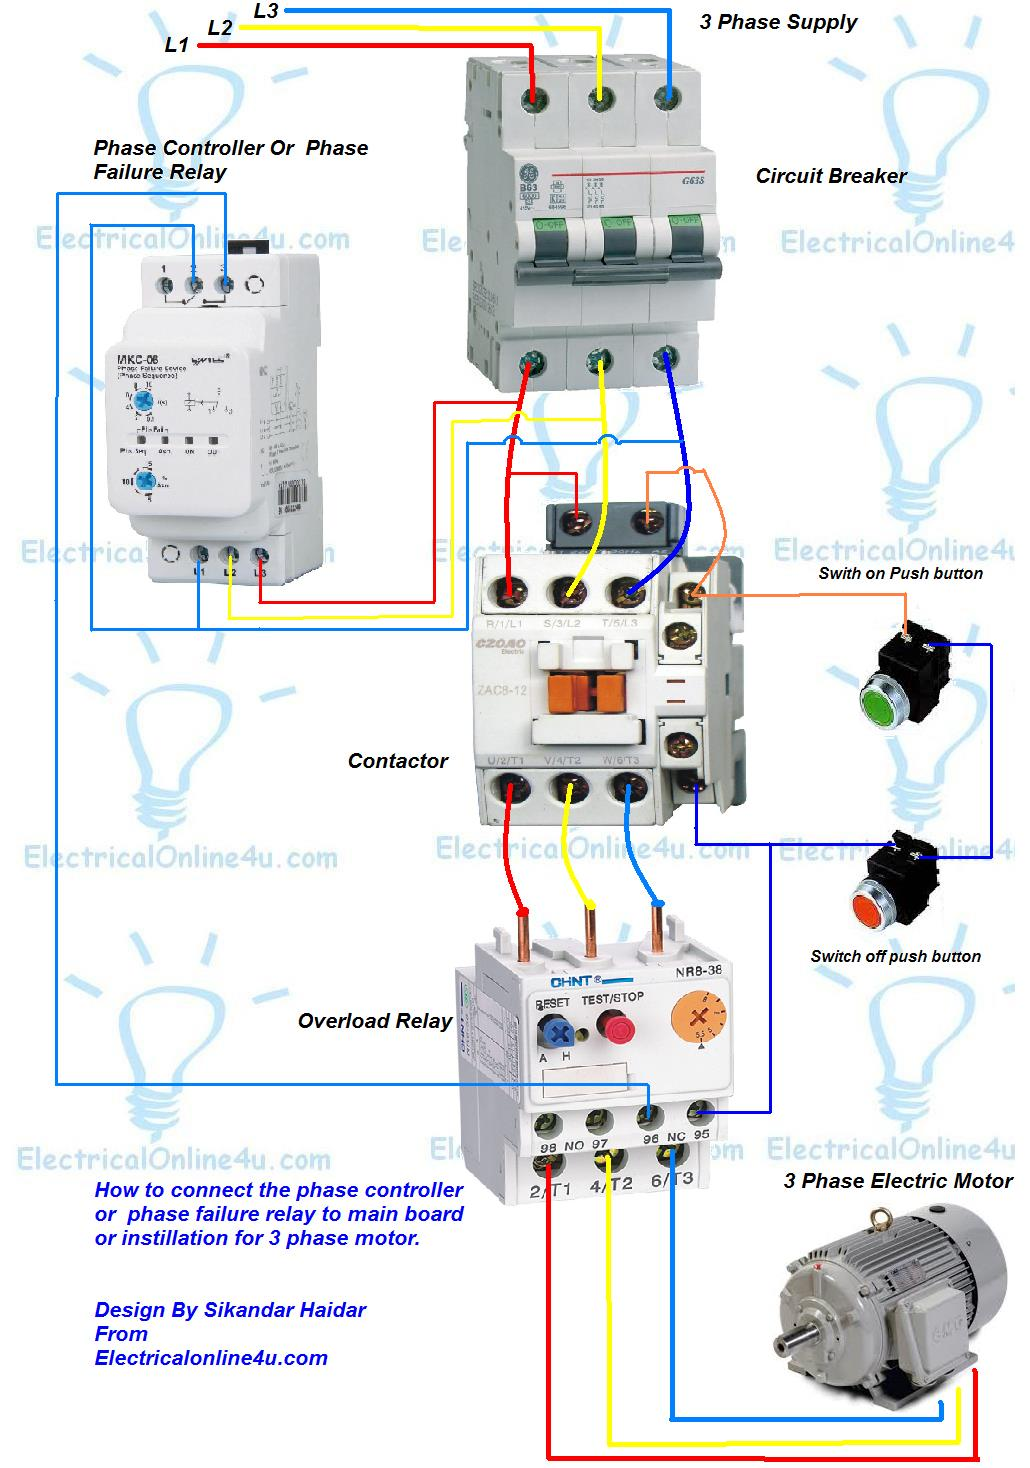 3 Phase Switch Wiring Diagram Explore On The Net Panel Controller Failure Relay Isolator Pressure